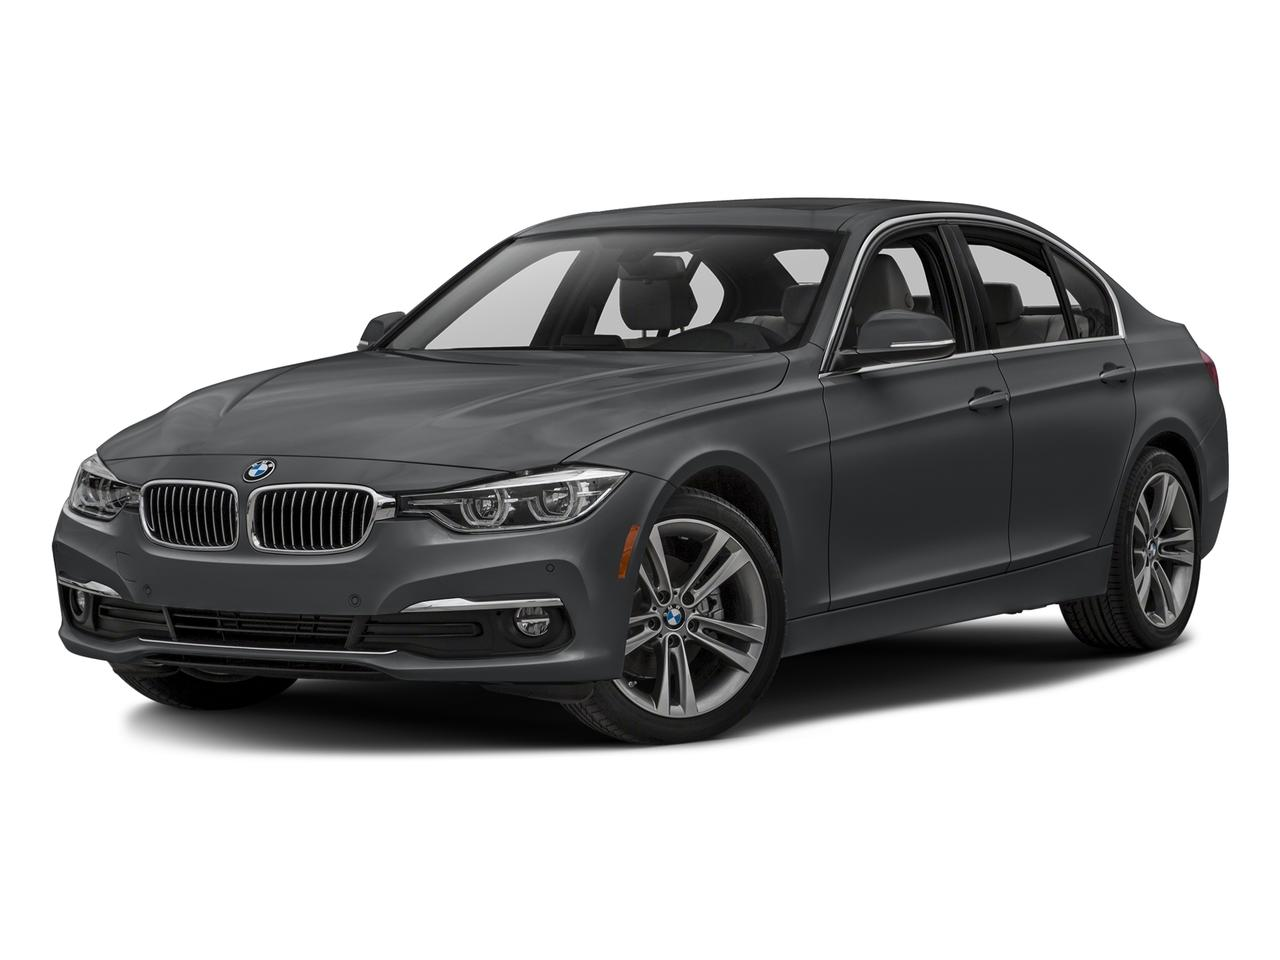 2017 BMW 328d Vehicle Photo in Pleasanton, CA 94588